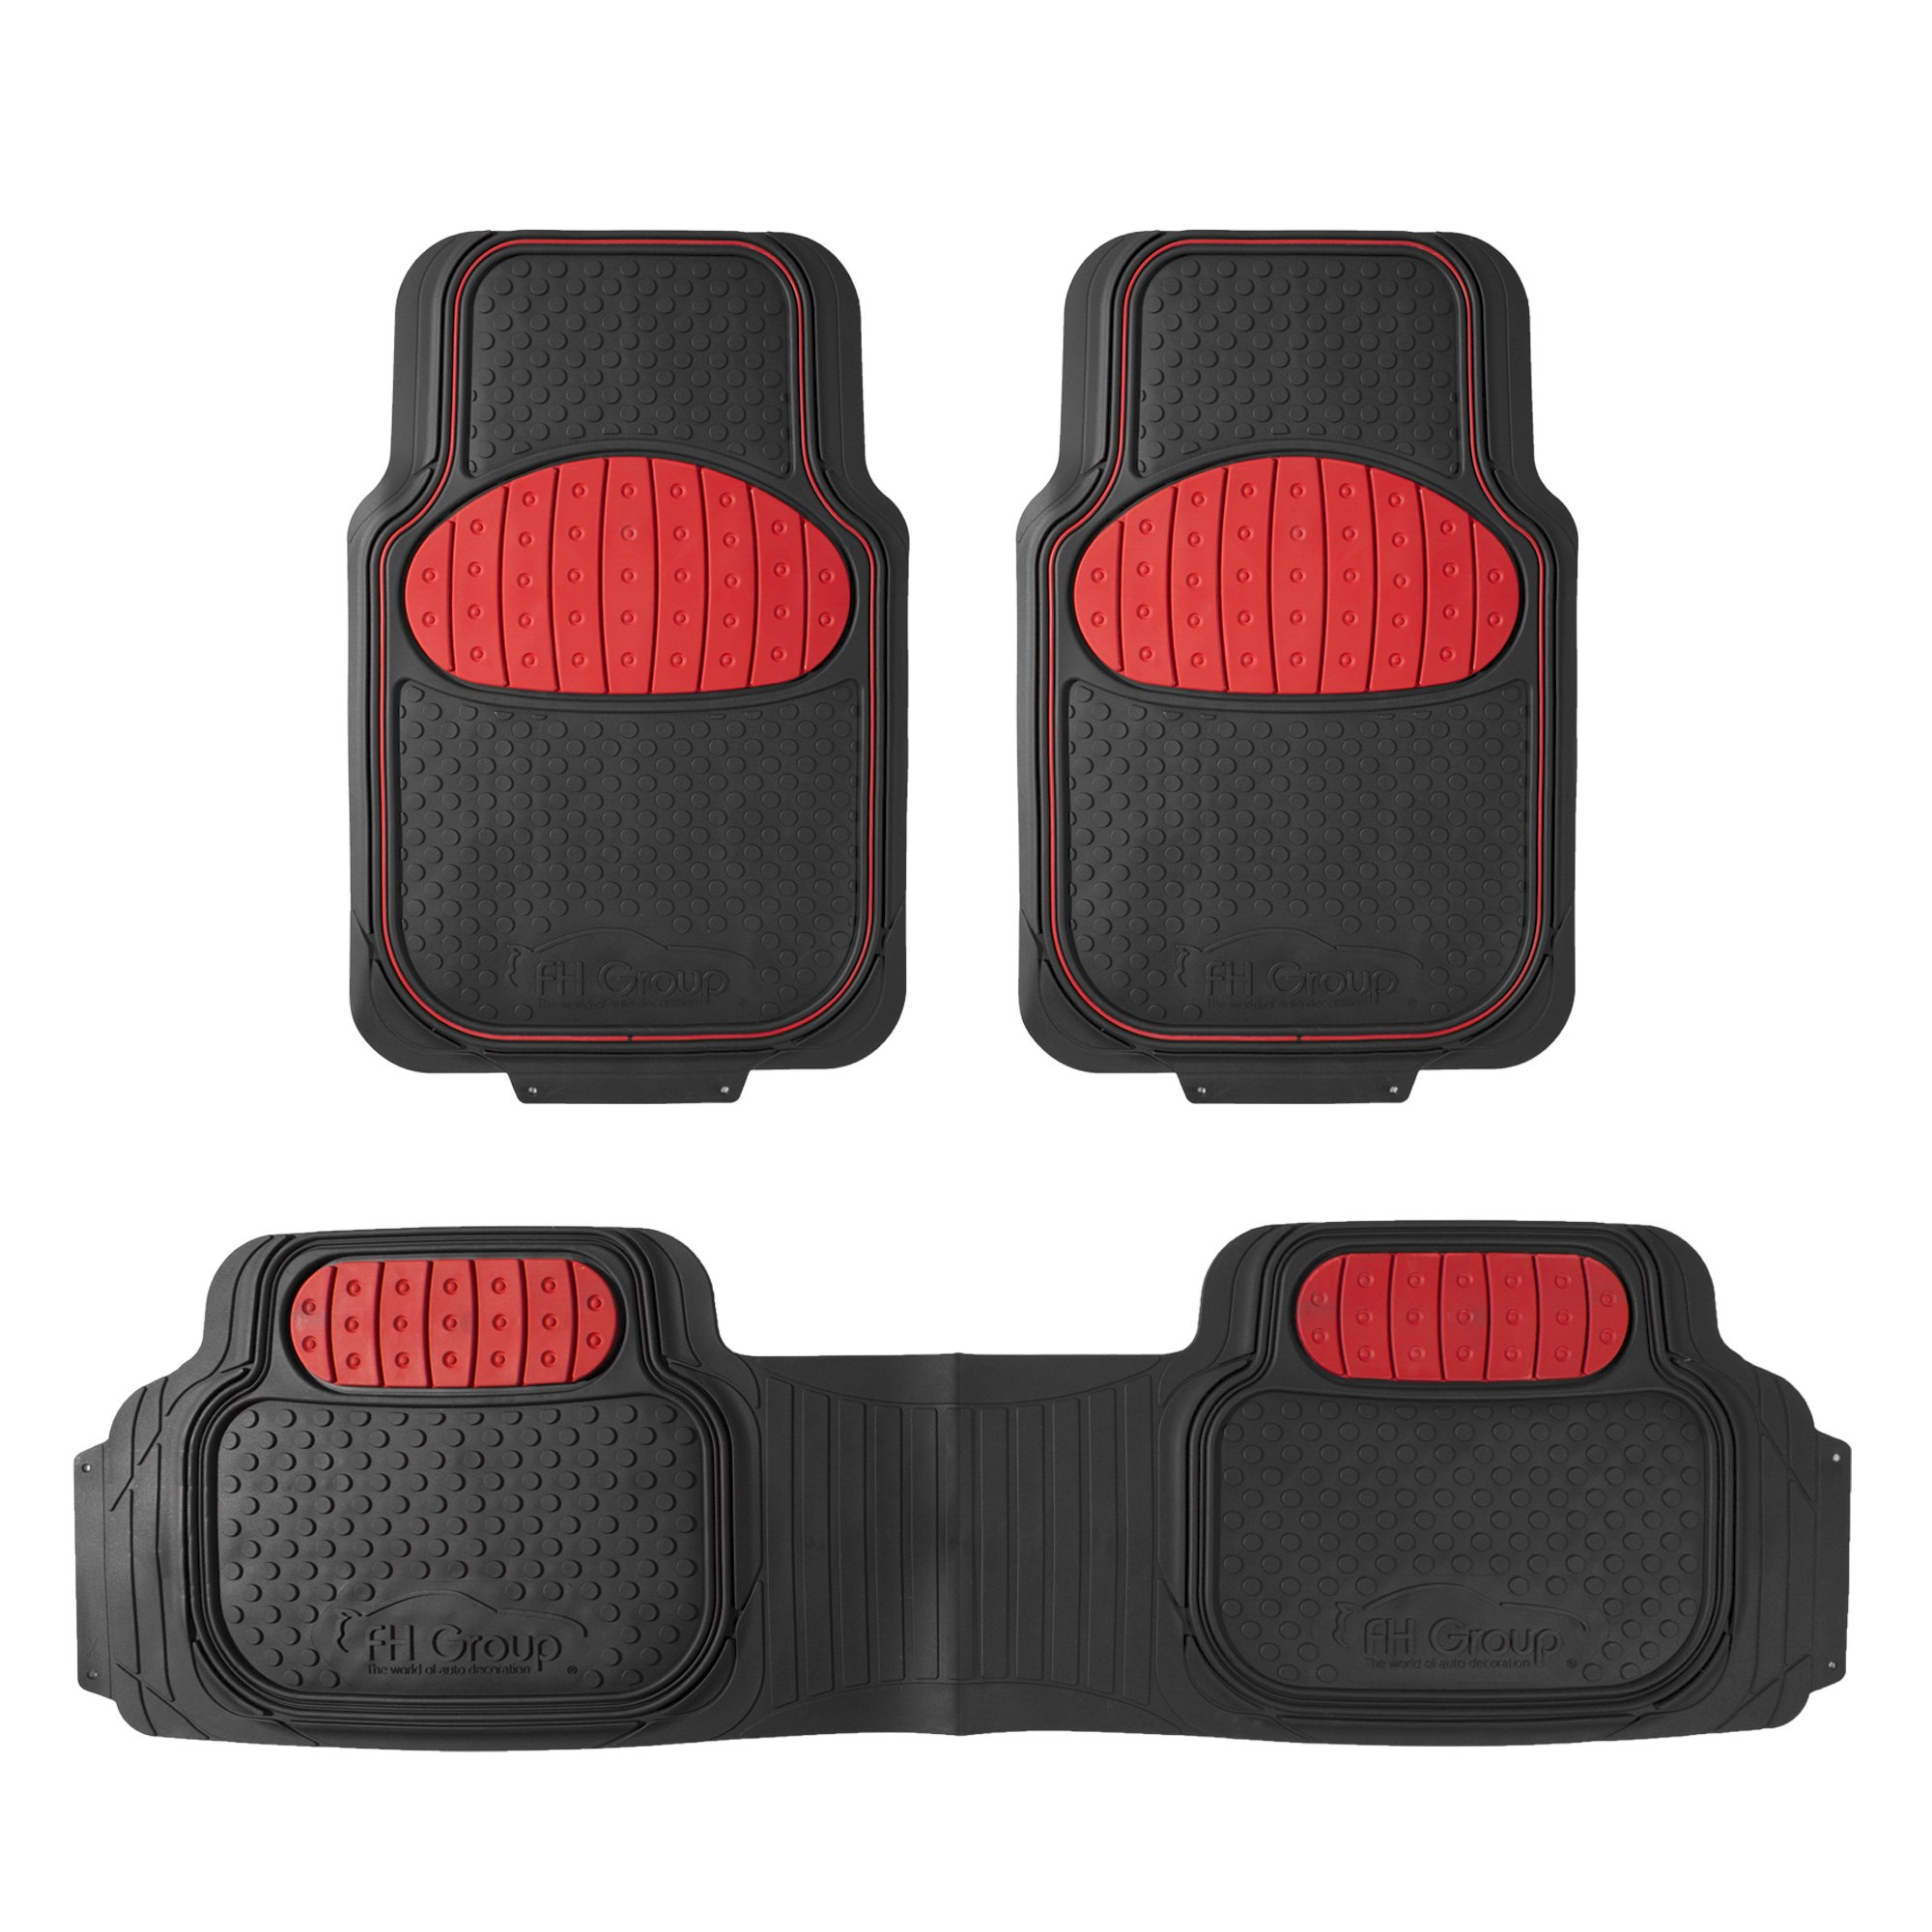 FH Group F11500RED Heavy Duty Touchdown Rubber Floor Mat (Red Full Set Trim to Fit)